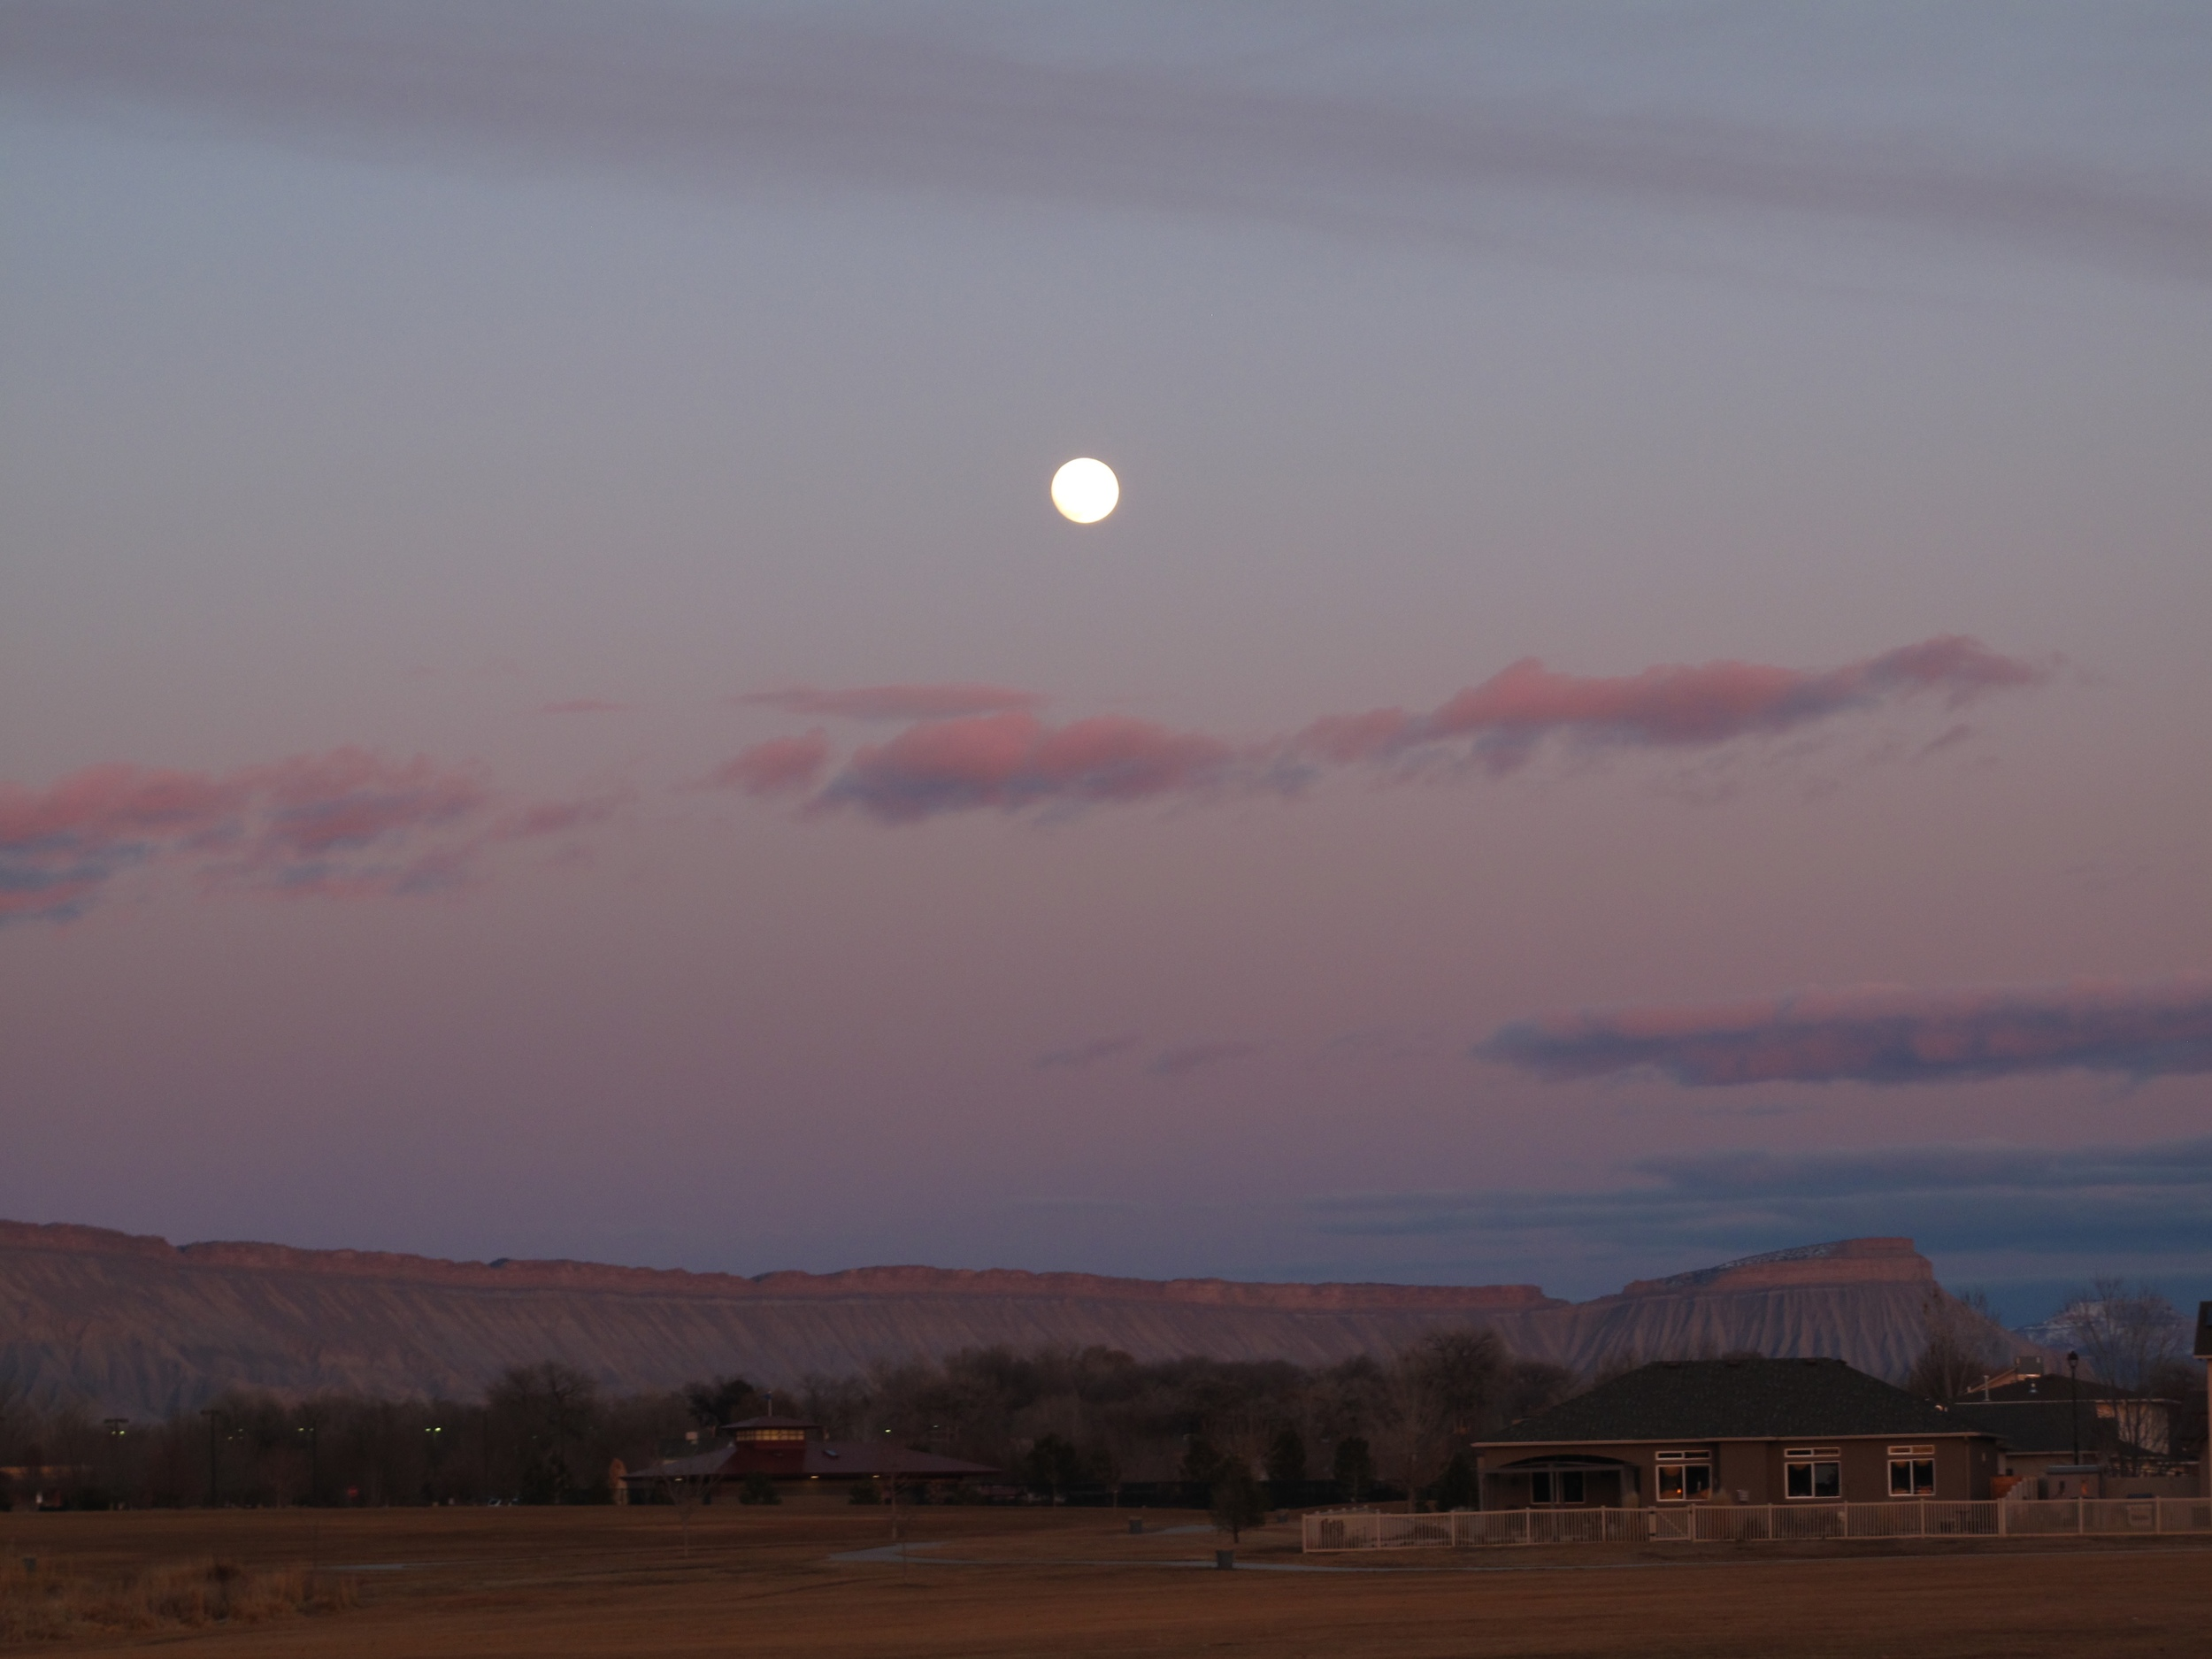 Full moon in a purple sunset over Grand Junctions flat topped mountains.